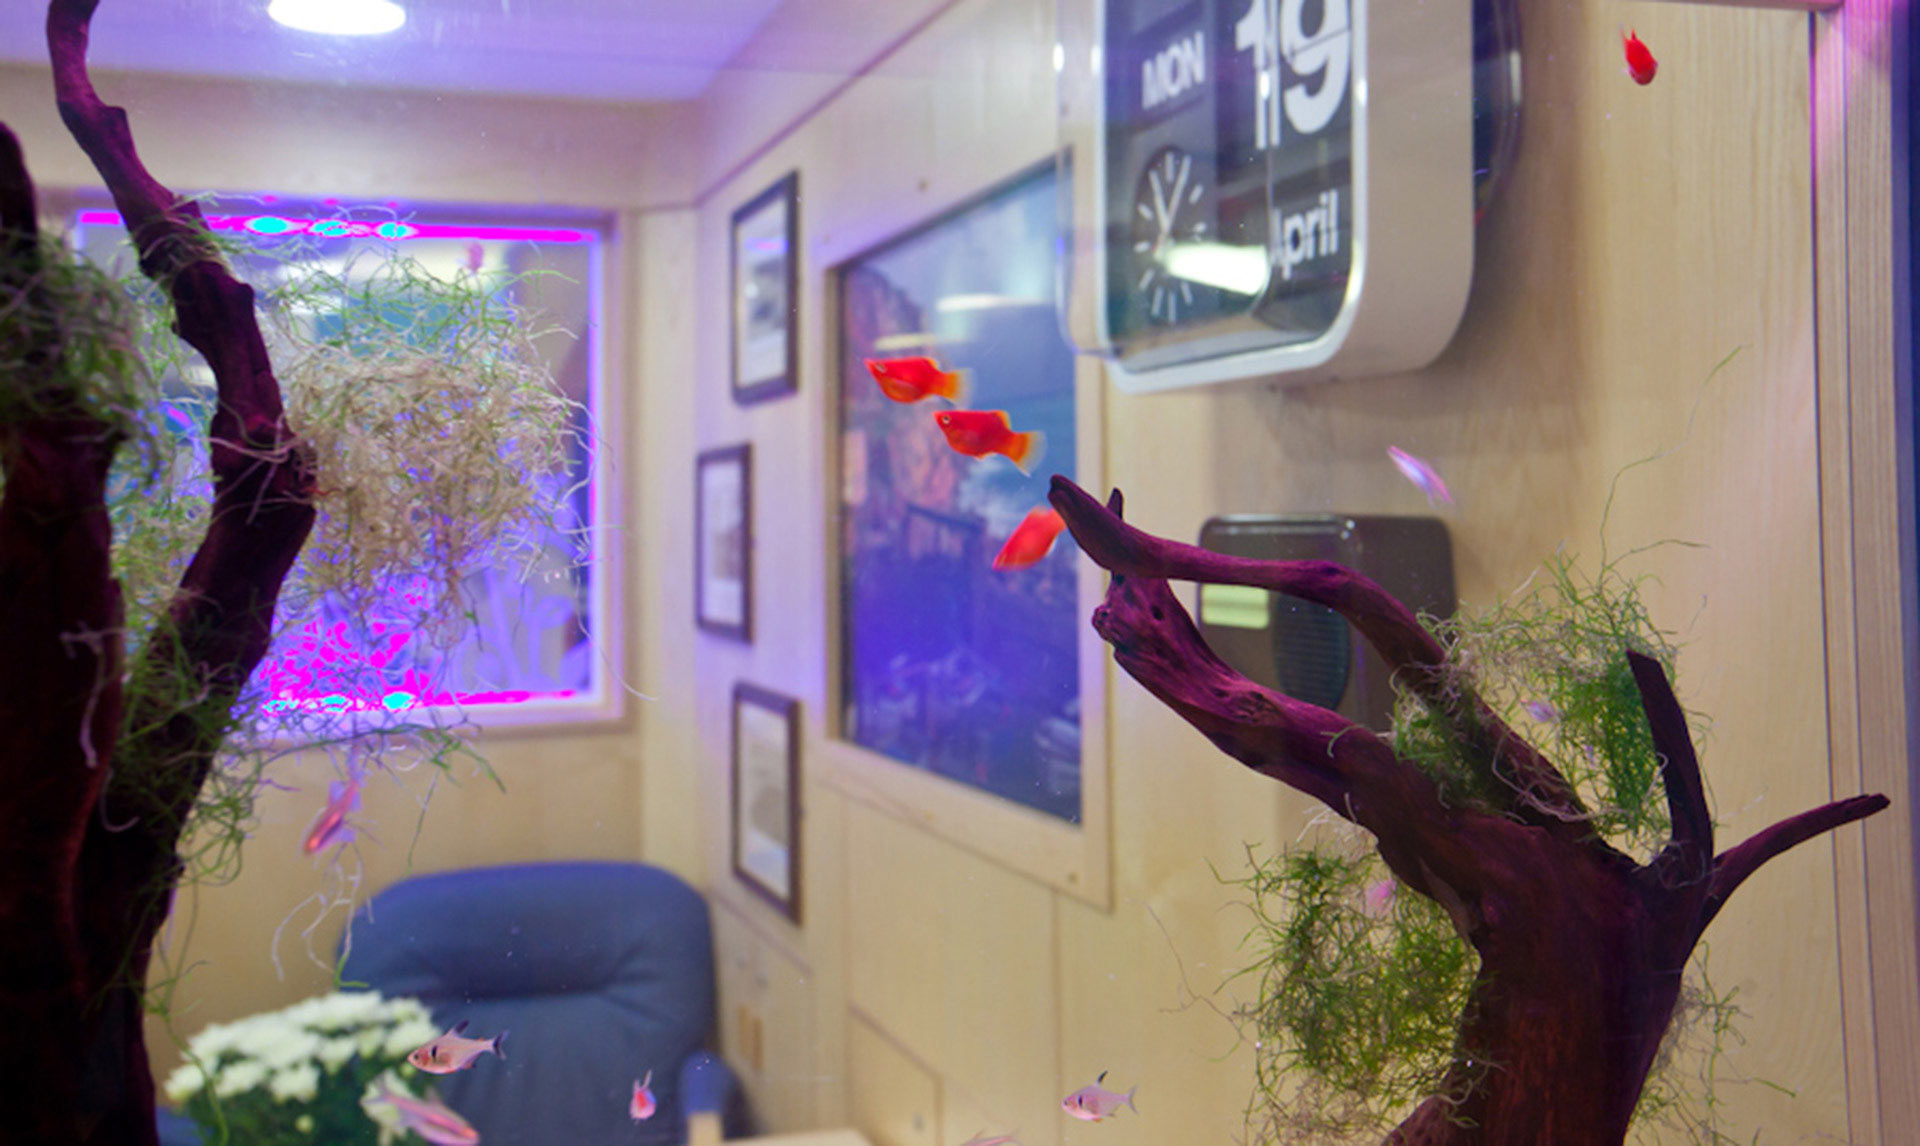 LED lit acrylic fish tank provides a calming atmosphere for patients at Dementia Ward